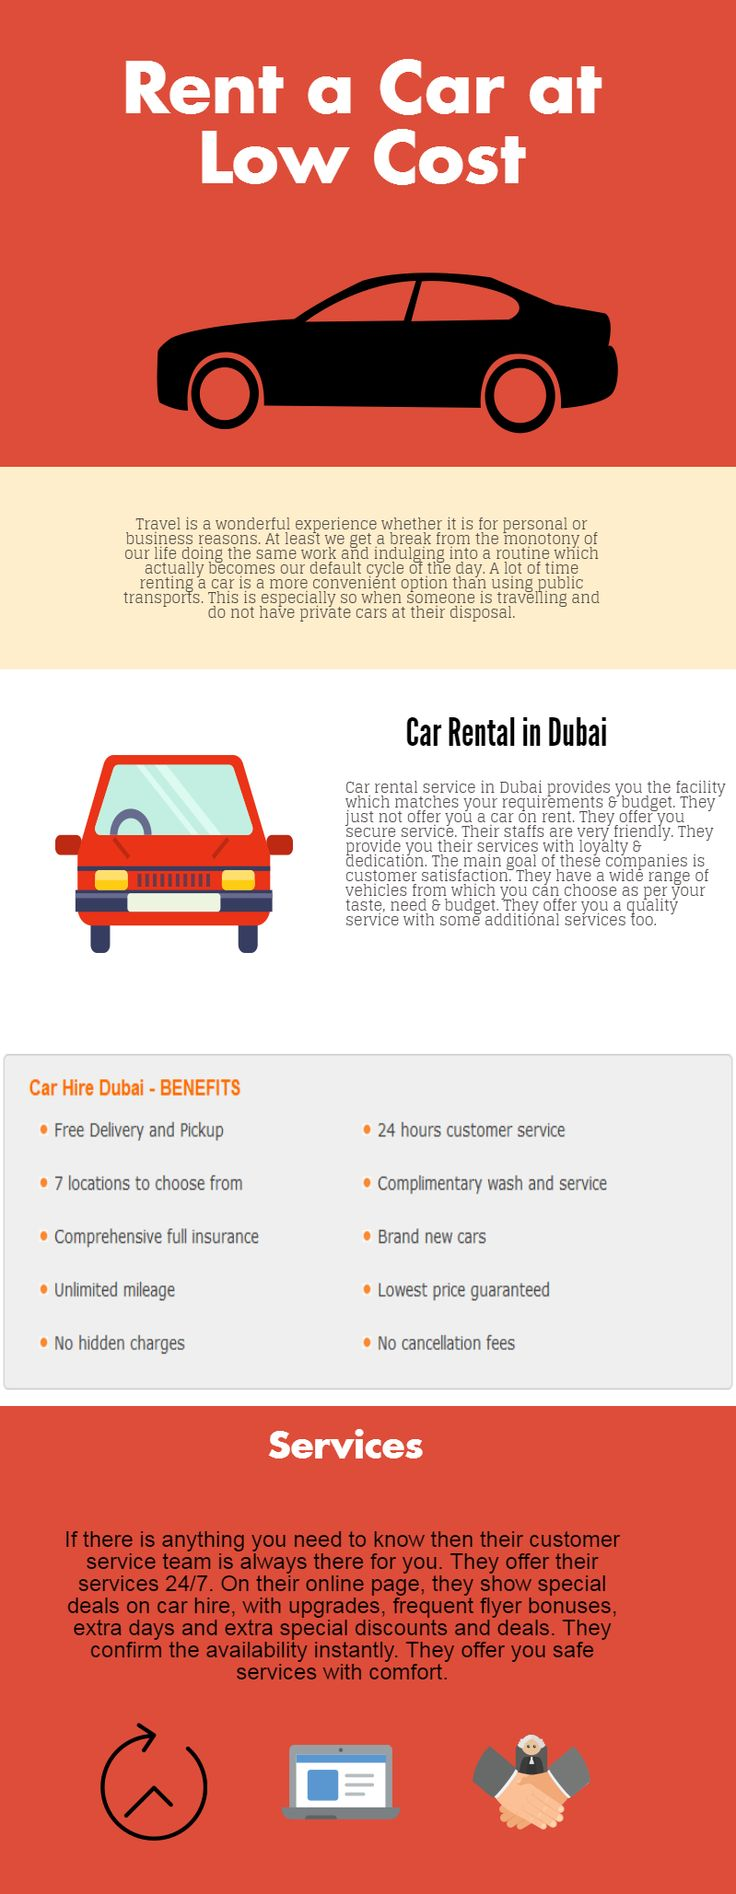 Are you looking for cheap car rental service in dubai amex car rental is a best car hire company in dubai